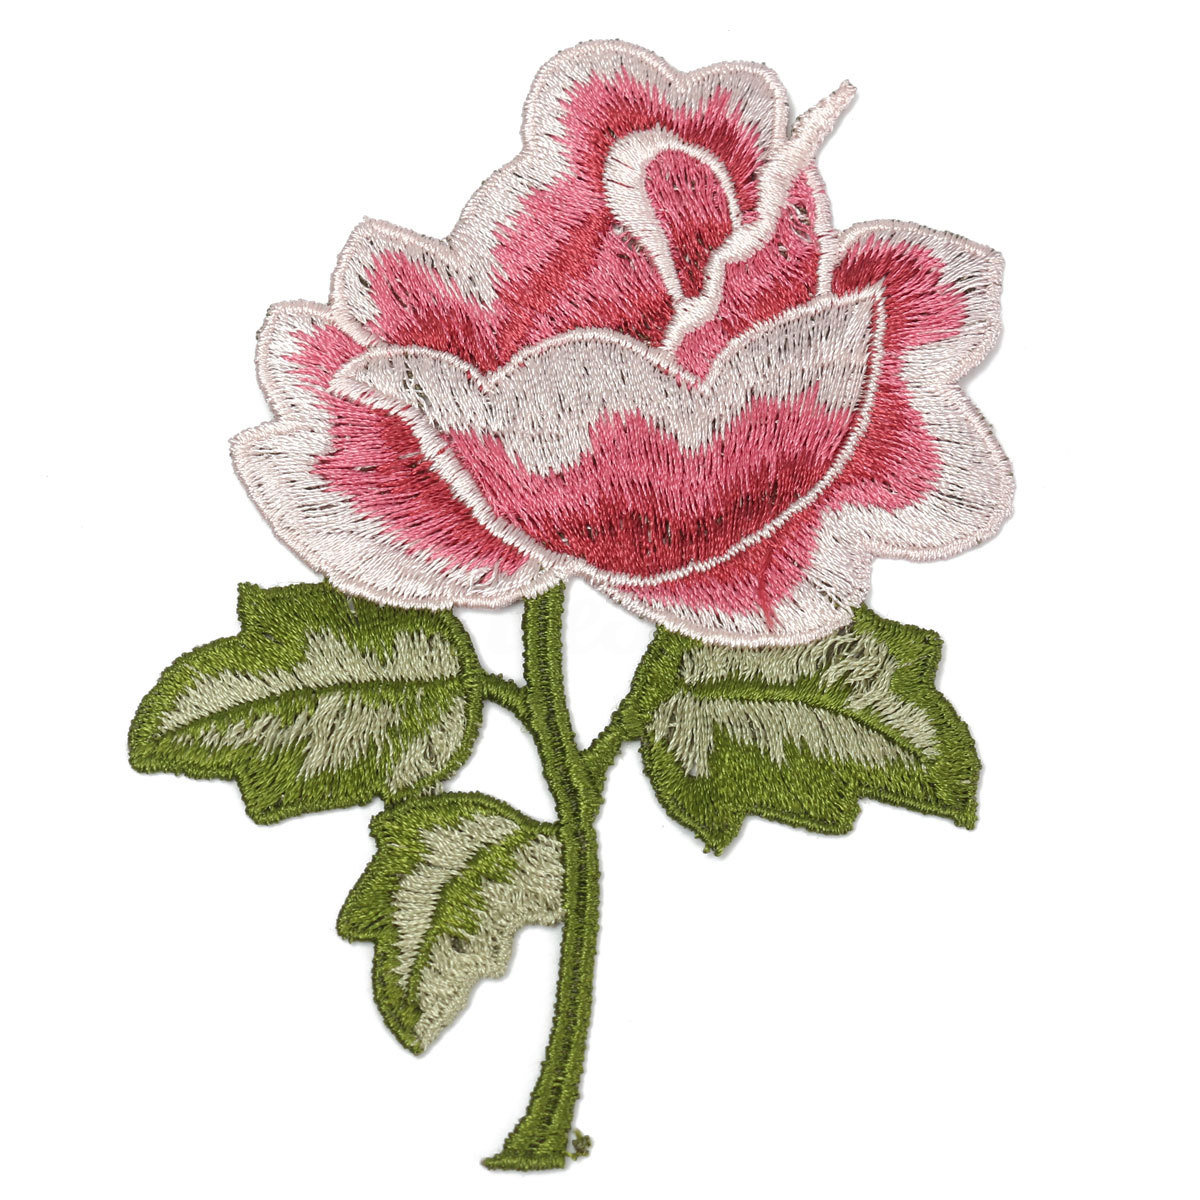 d234c3695172 China Custom Iron on Rose Applique Embroidery Flower Patches Photos ...